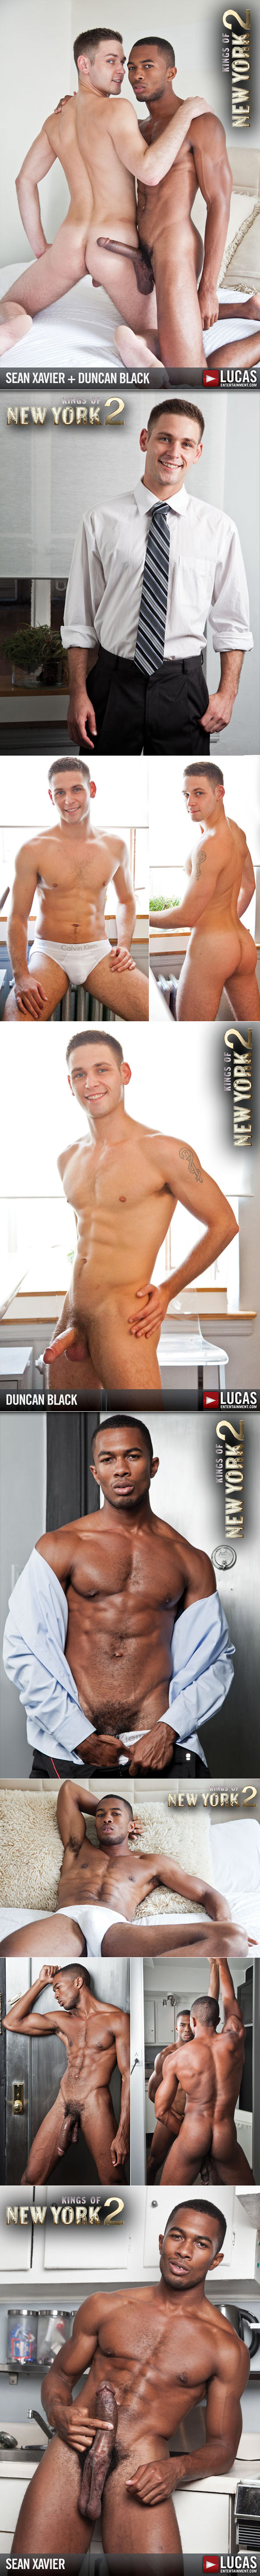 "Lucas Entertainment: Sean Xavier bangs Duncan Black in ""Kings of New York, Season 2"""